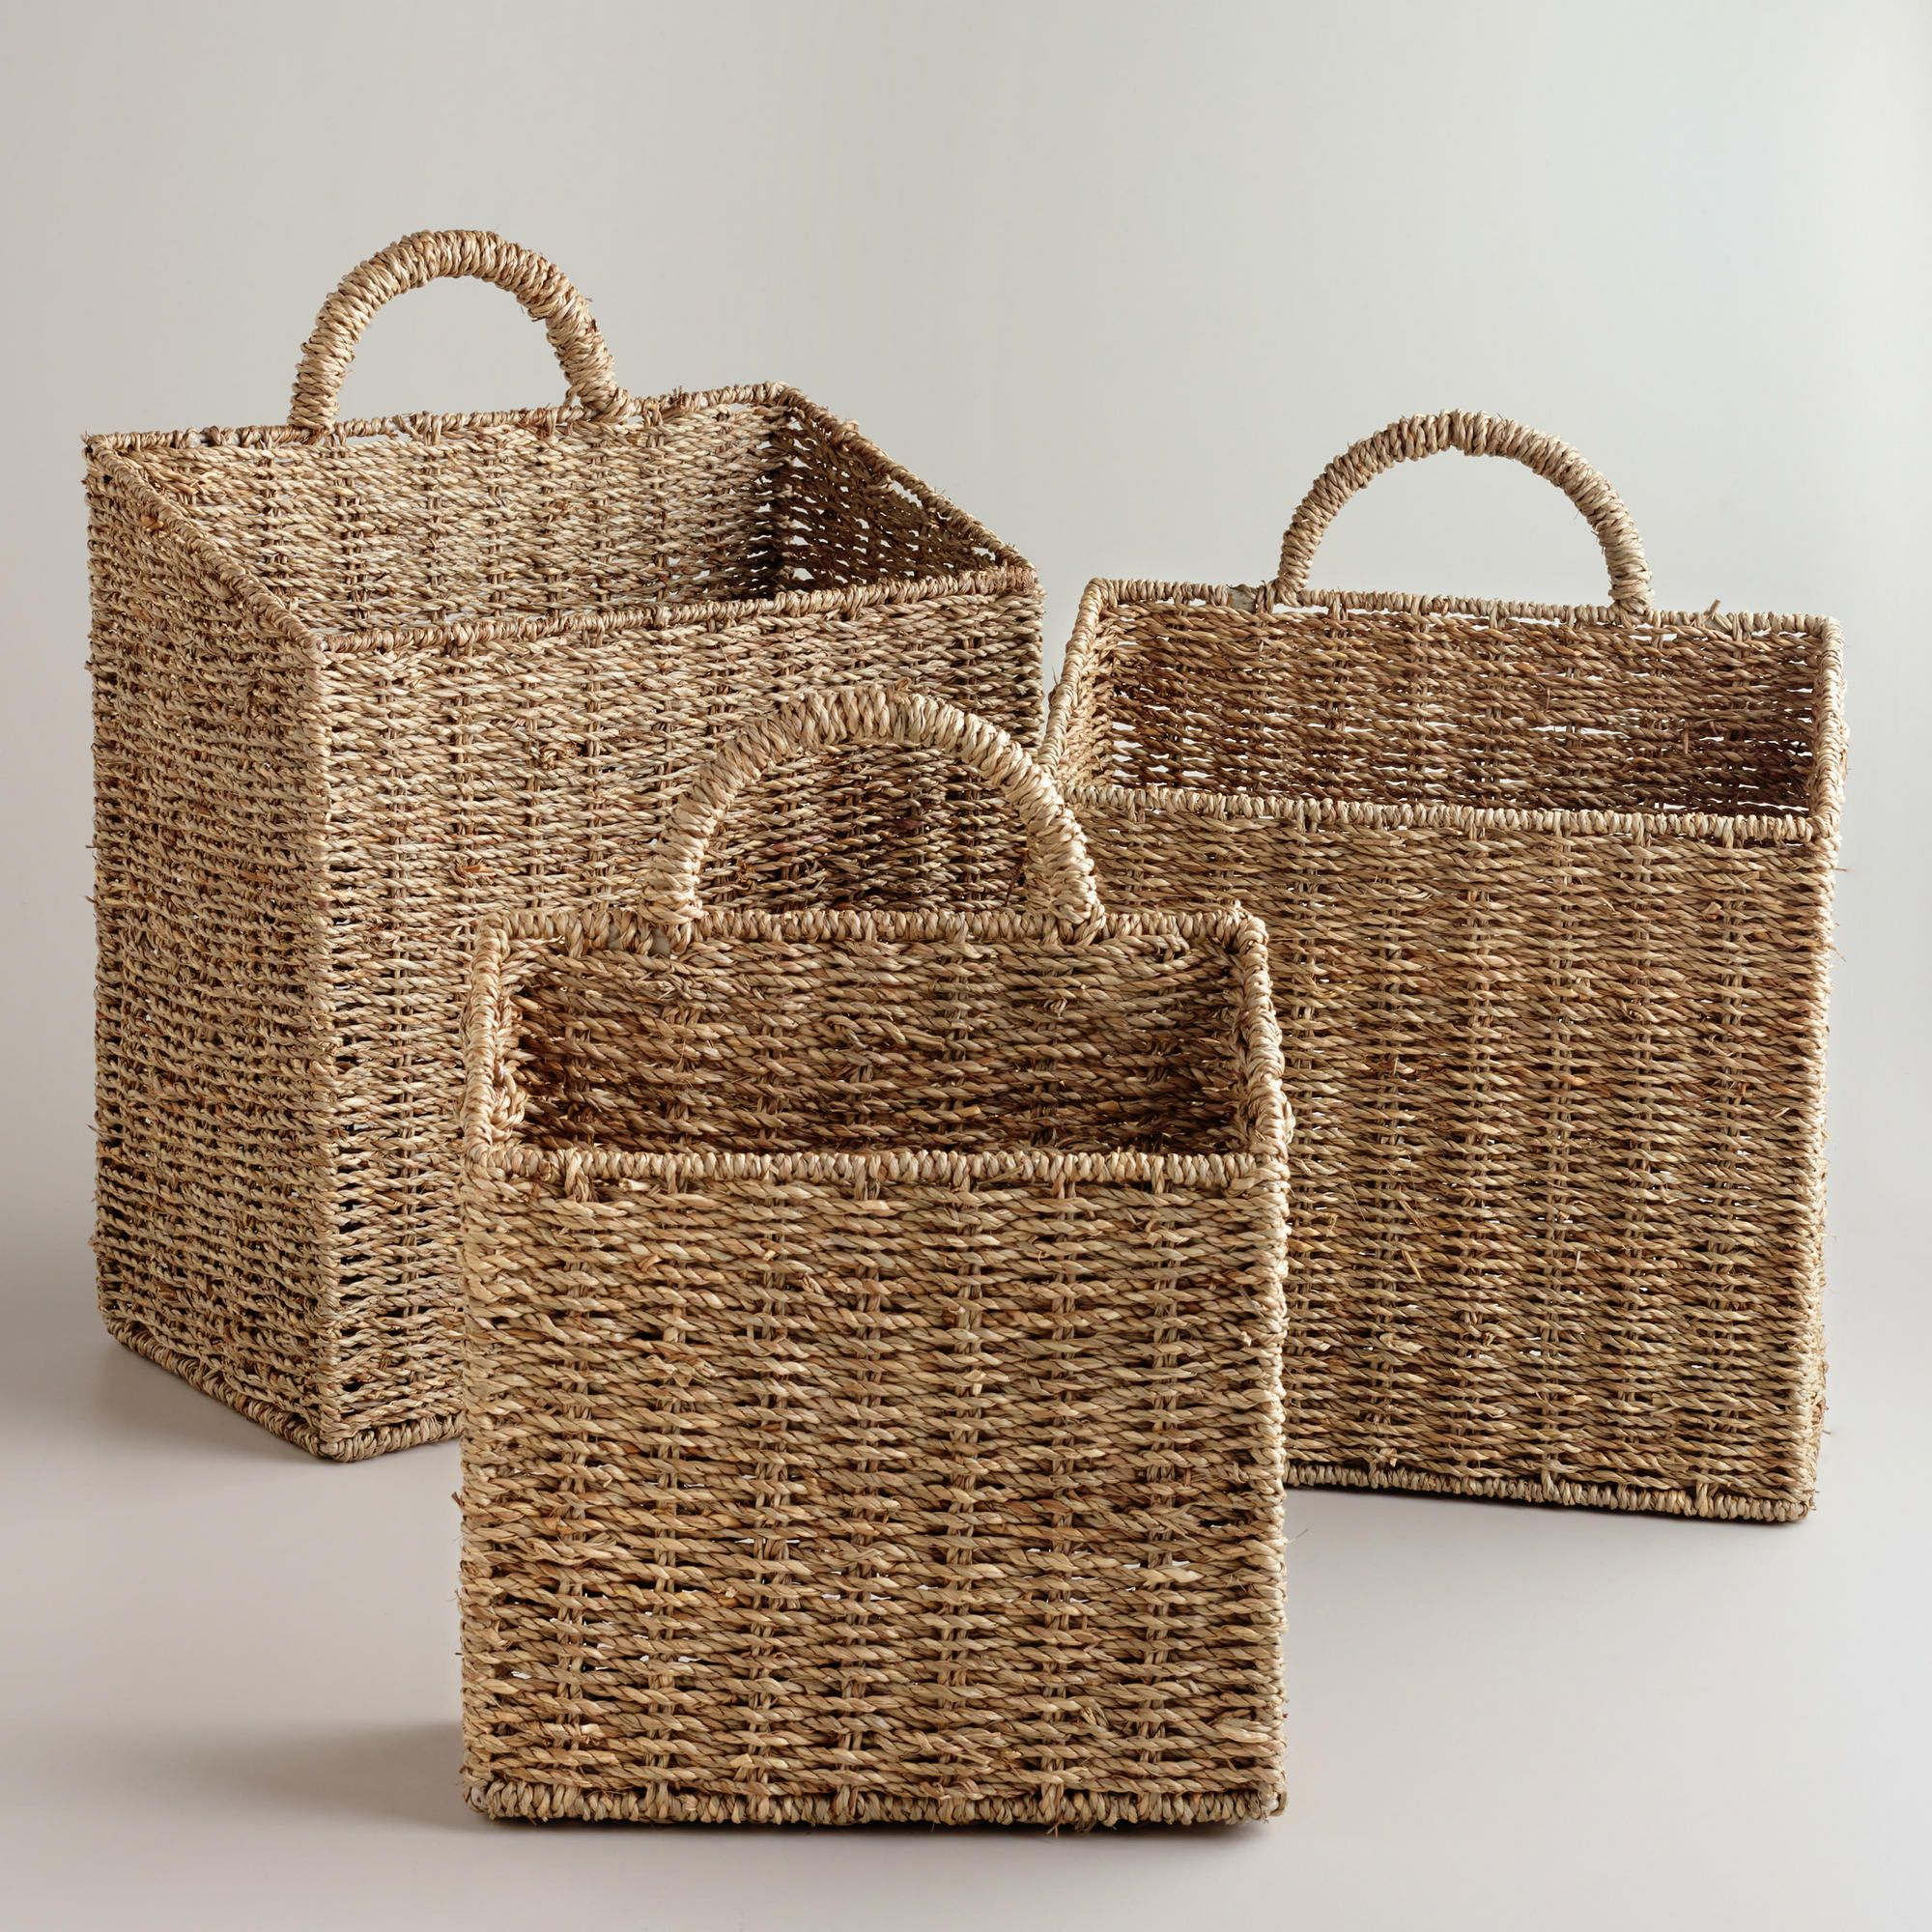 Rachael Wall Baskets Baskets On Wall Hanging Wall Baskets Storage Baskets